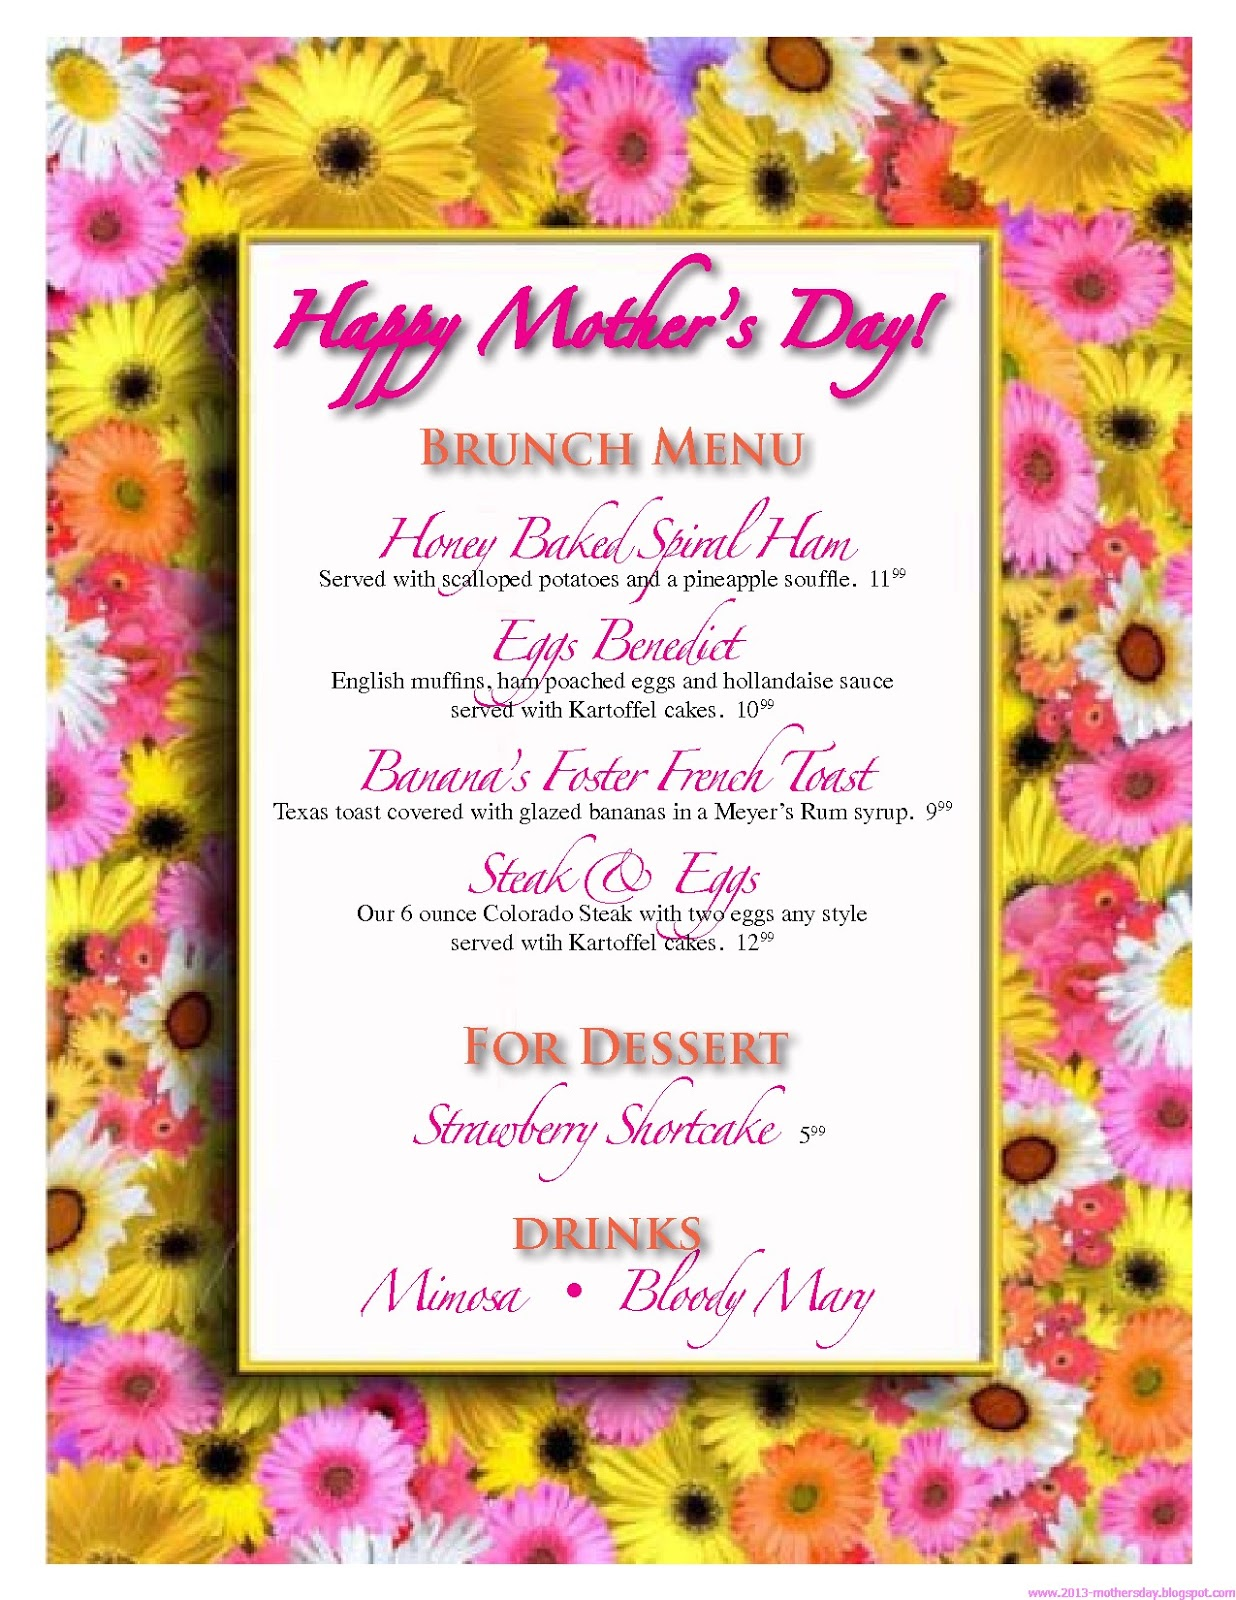 Wallpaper Free Download Happy Mothers Day Message